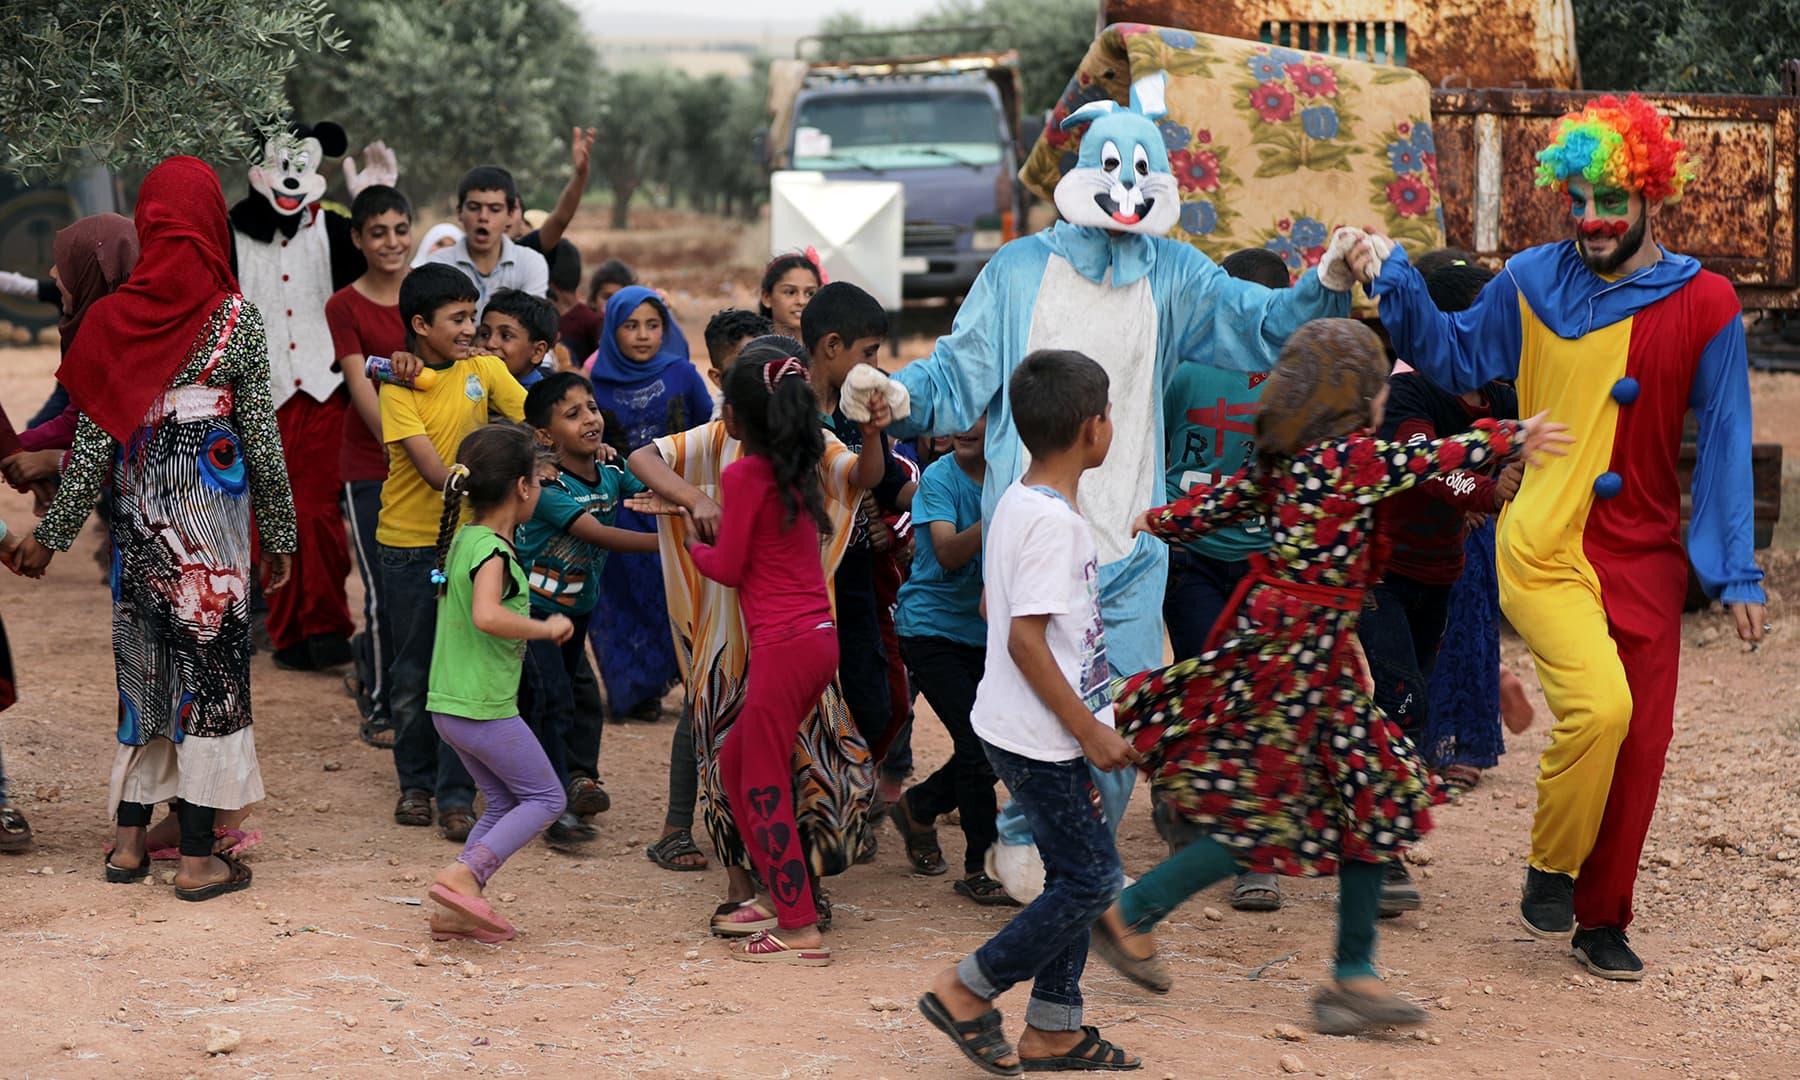 A man dressed as clown entertains displaced Syrian refugee children during the first day of Eidul Fitr, in an olive grove at the north of Idlib Countryside, Syria on June 4. — Reuters